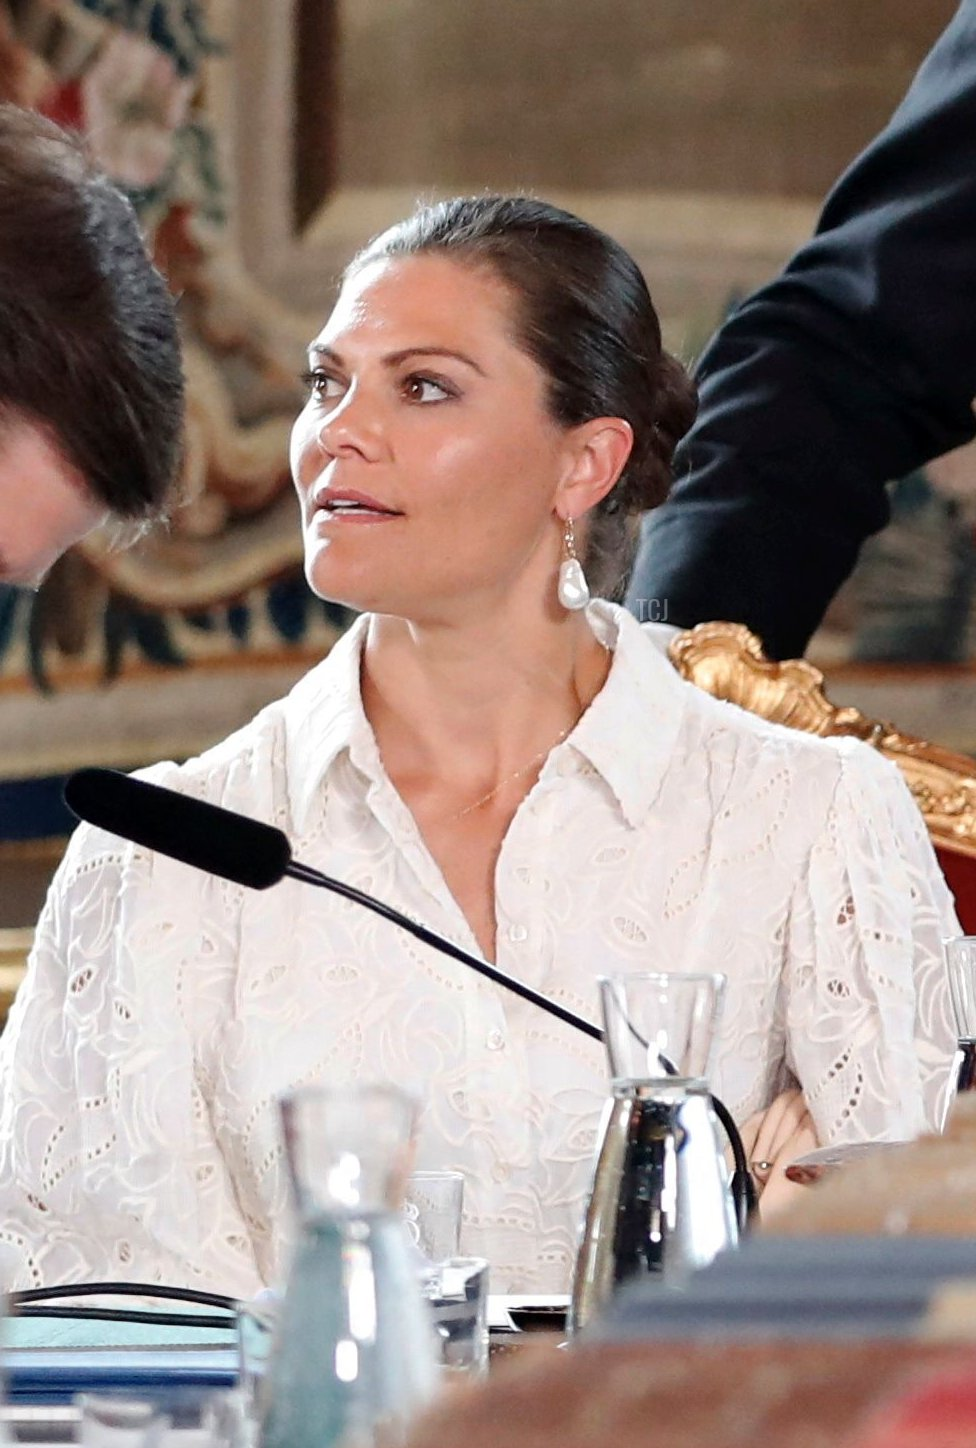 Sweden's Crown Princess Victoria (2L) and Sweden's King Carl XVI Gustaf (2R) together with Prime Minister Stefan Loefven (R) and Speaker of the Parliament Andreas Norlen (L) attend a Change of Government Council at the Royal Palace of Stockholm on July 9, 2021